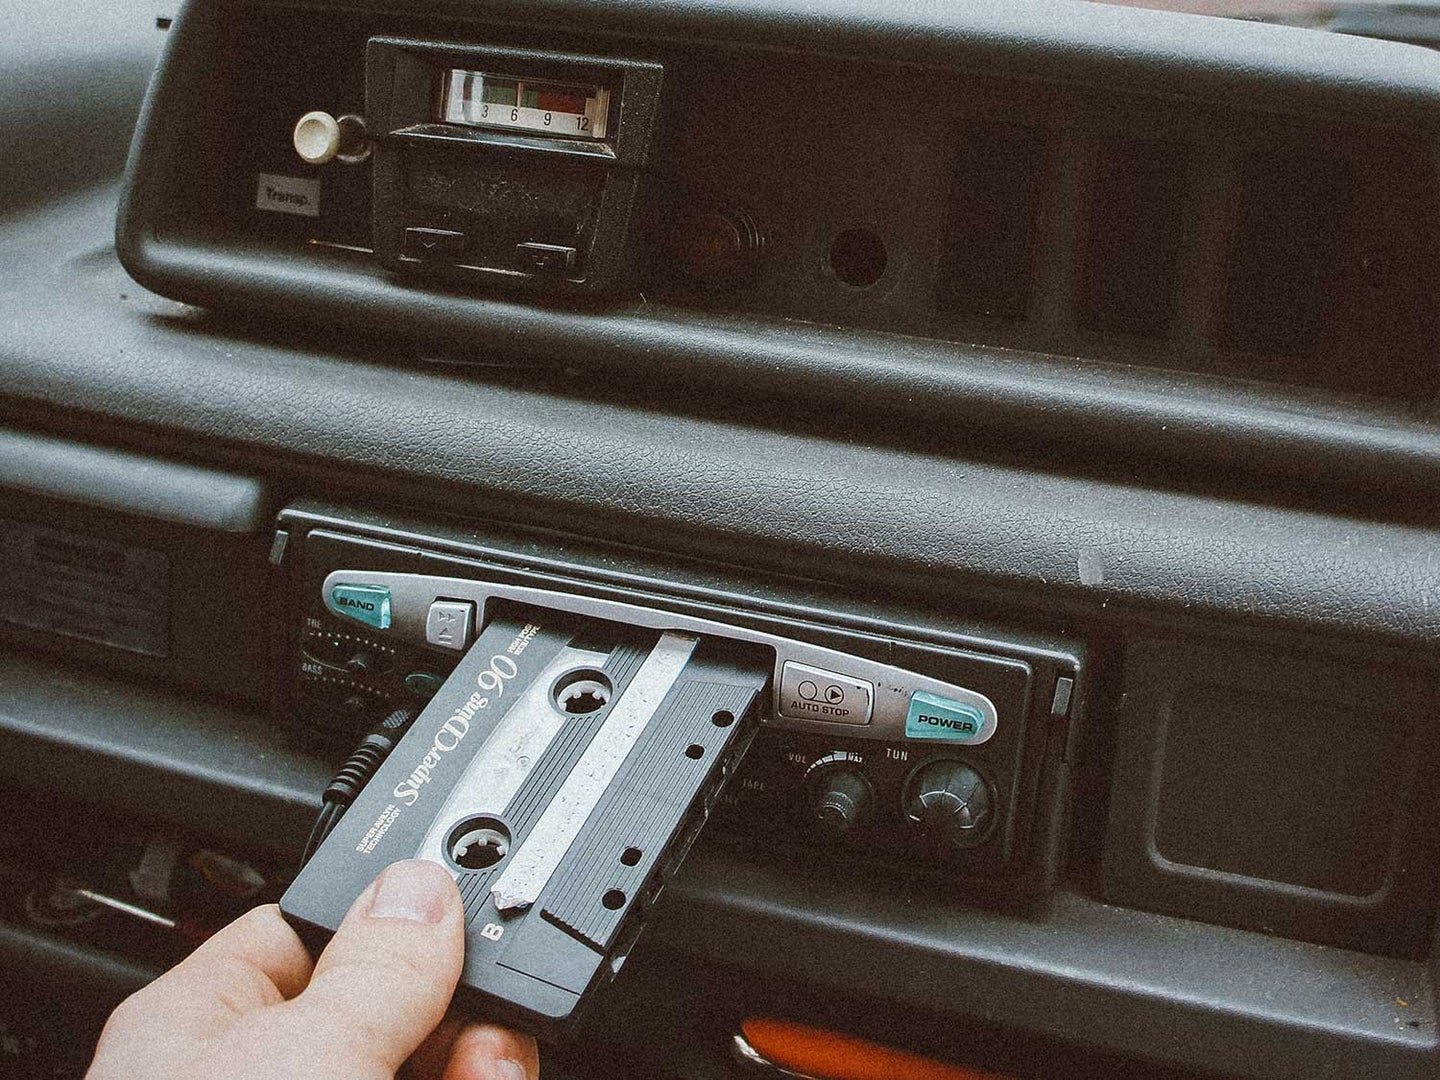 Car cassette tape playing in car.